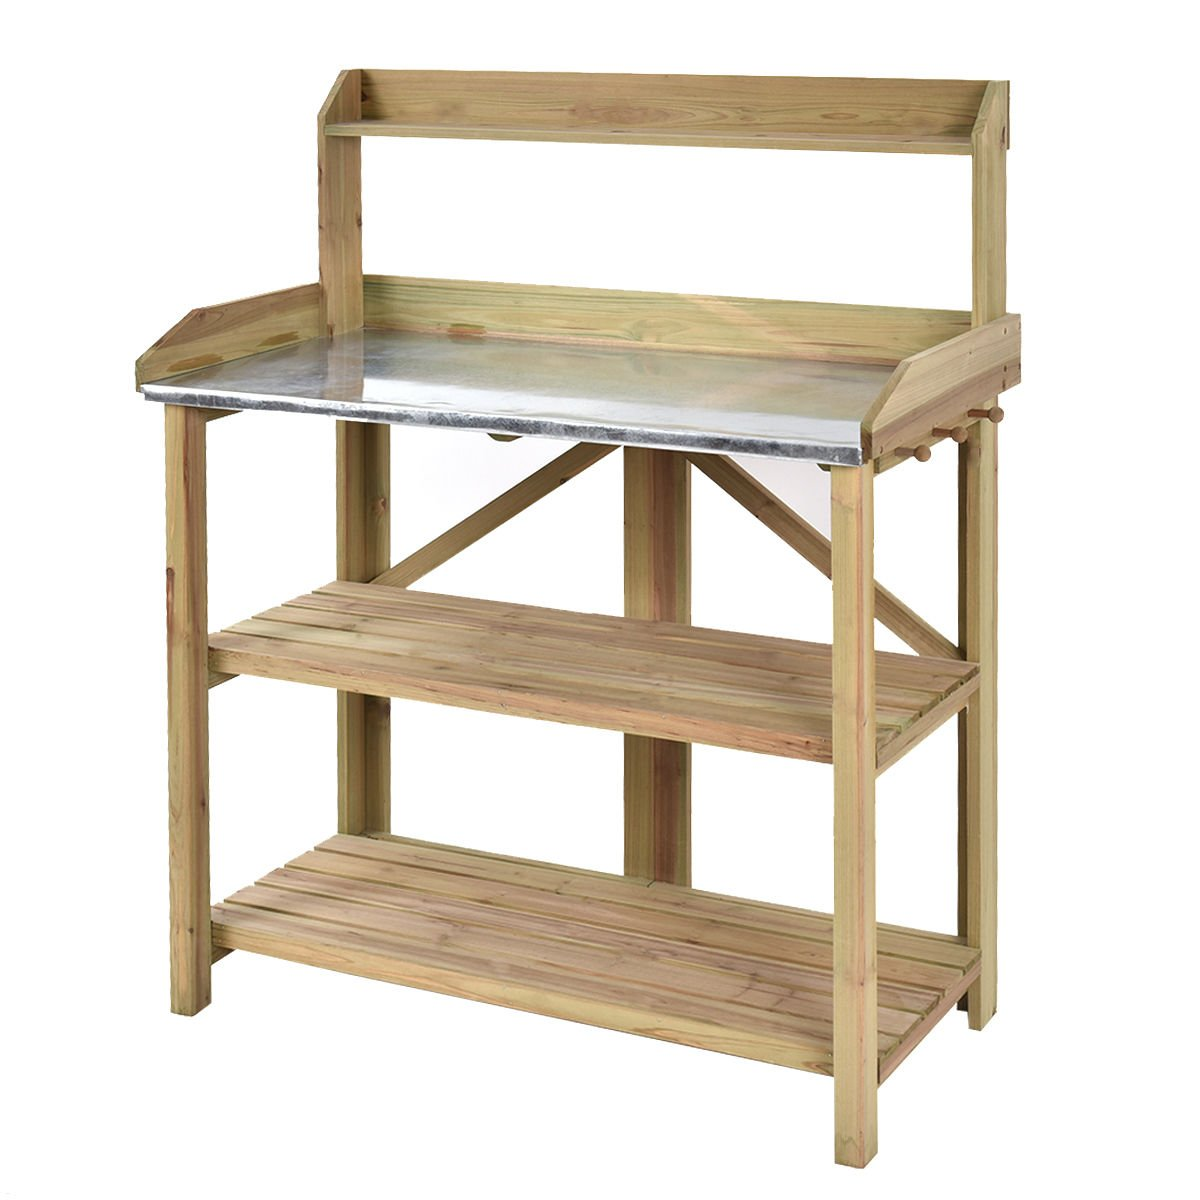 Potting Work Bench Station Planting Workbench With 3 Shelf Outdoor Garden Wooden by White Bear & Brown Rabbit (Image #8)